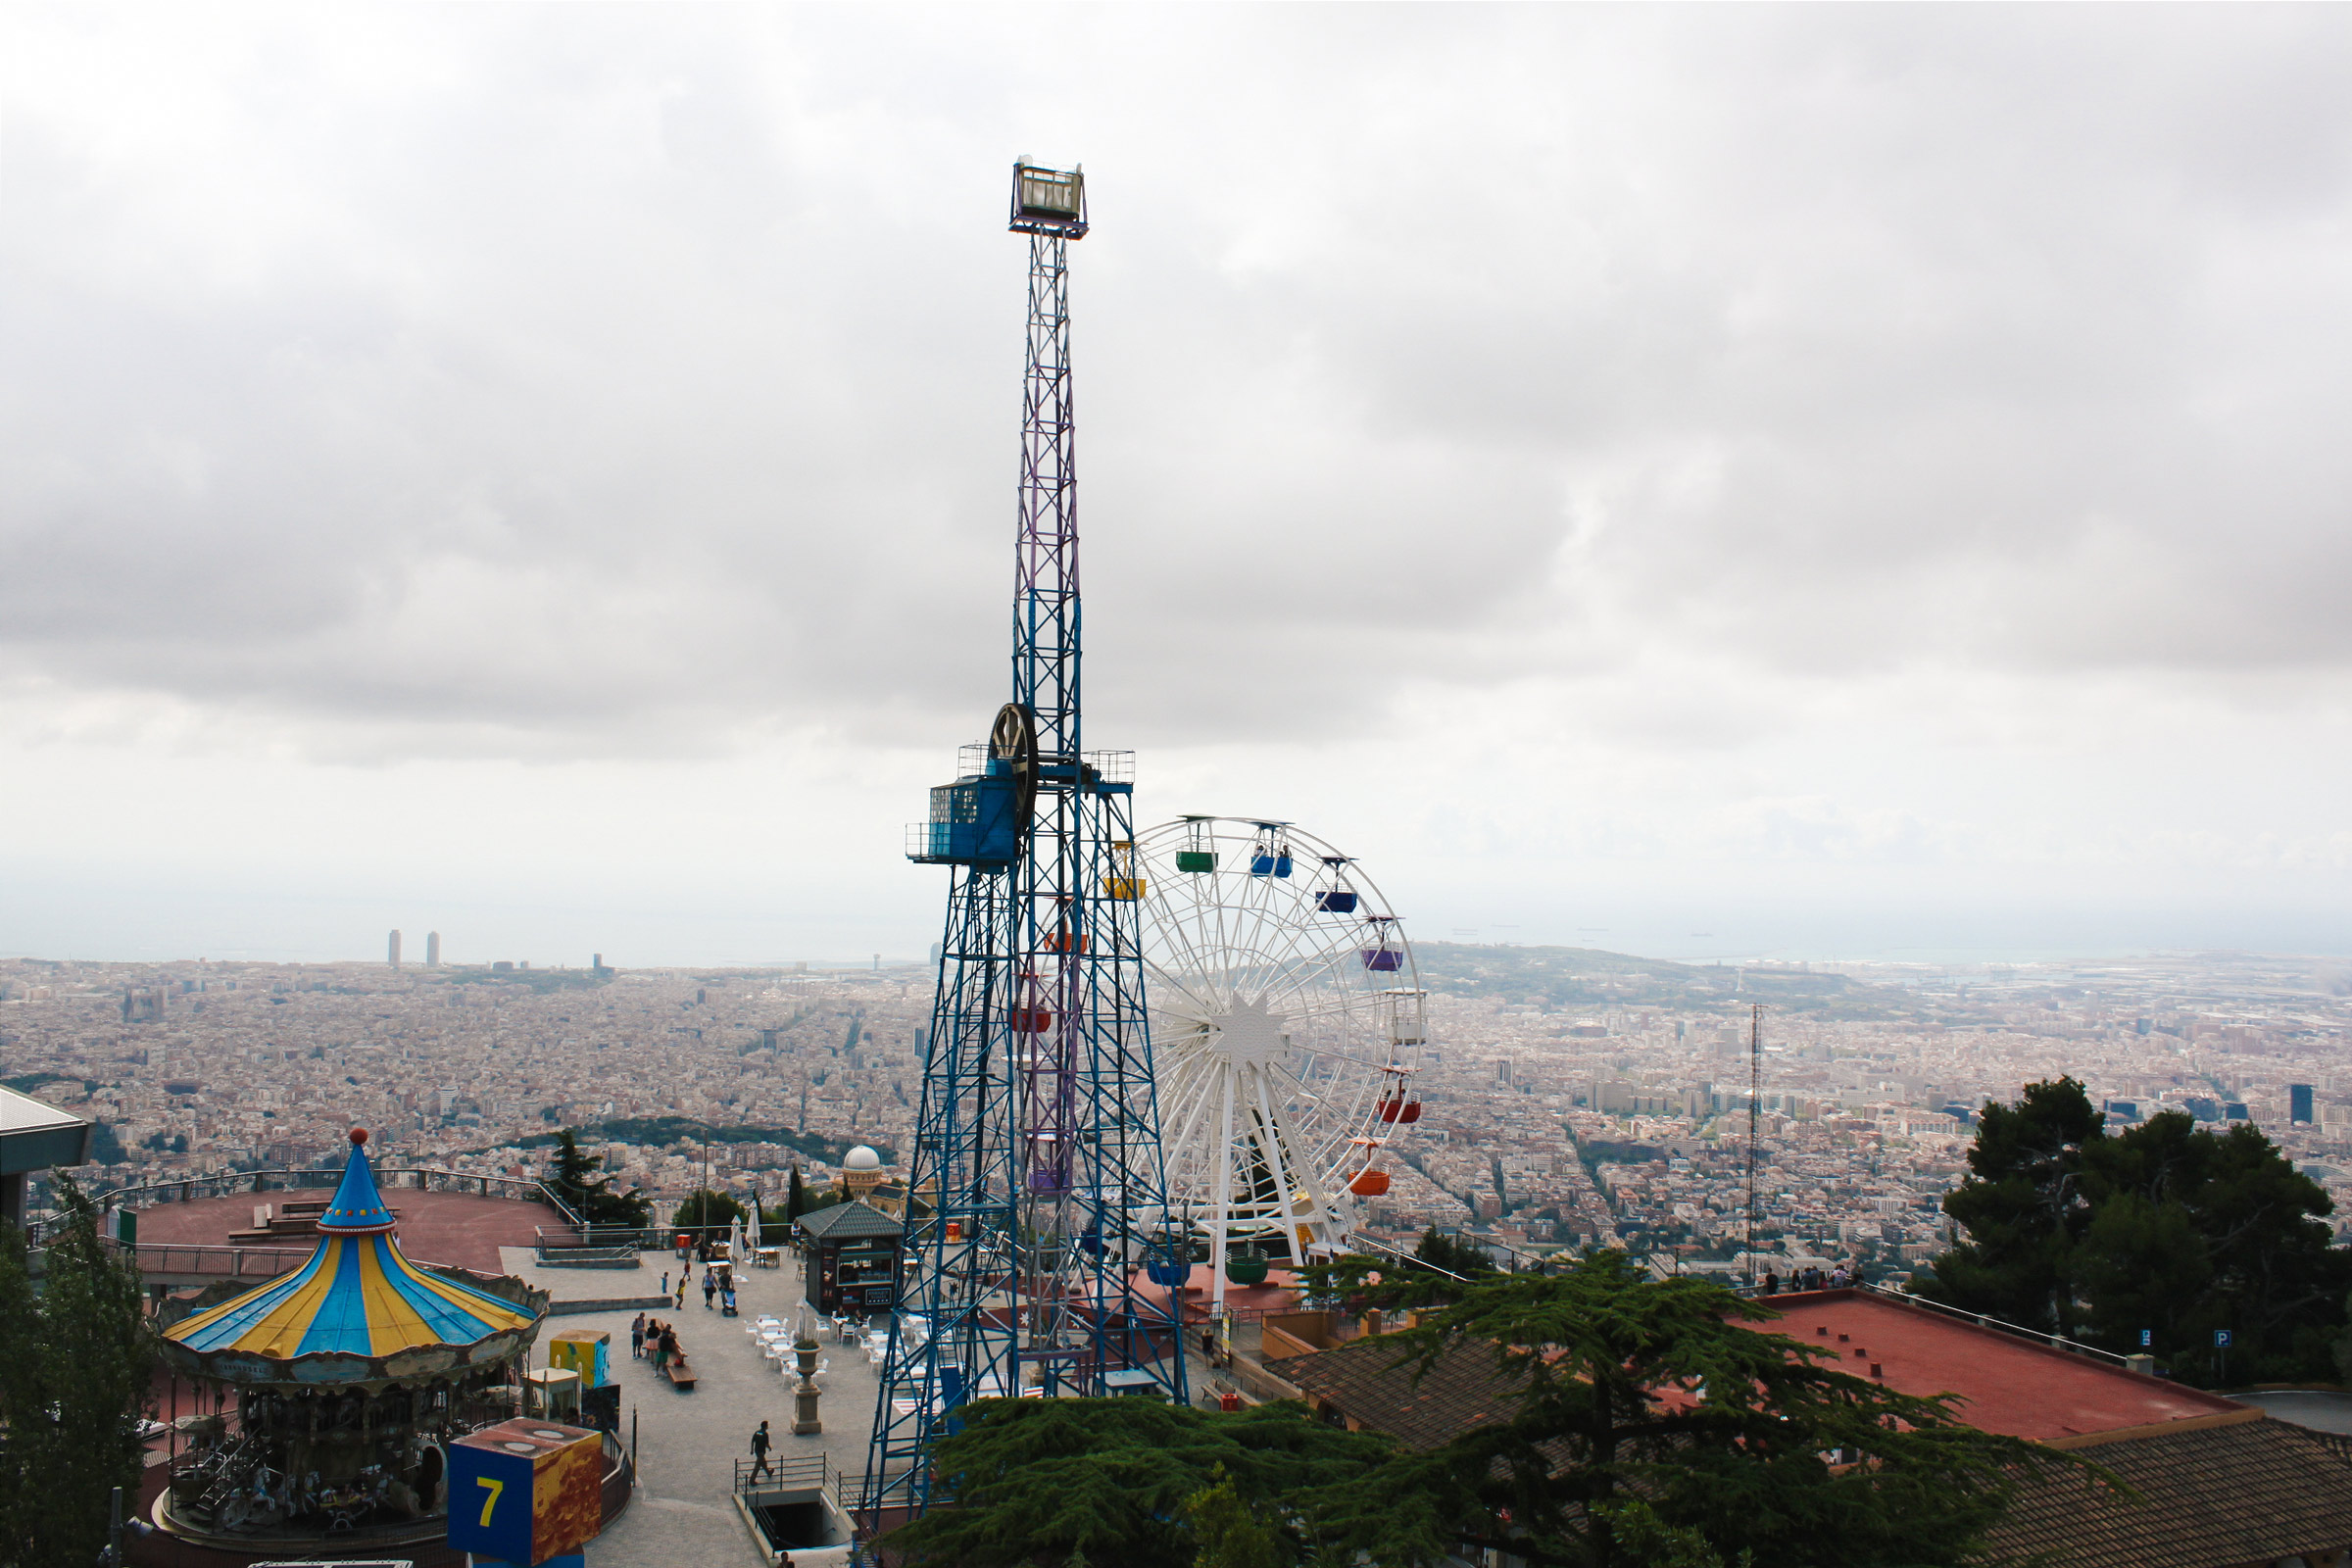 Tibidaho Amusement Park in Barcelona, Spain